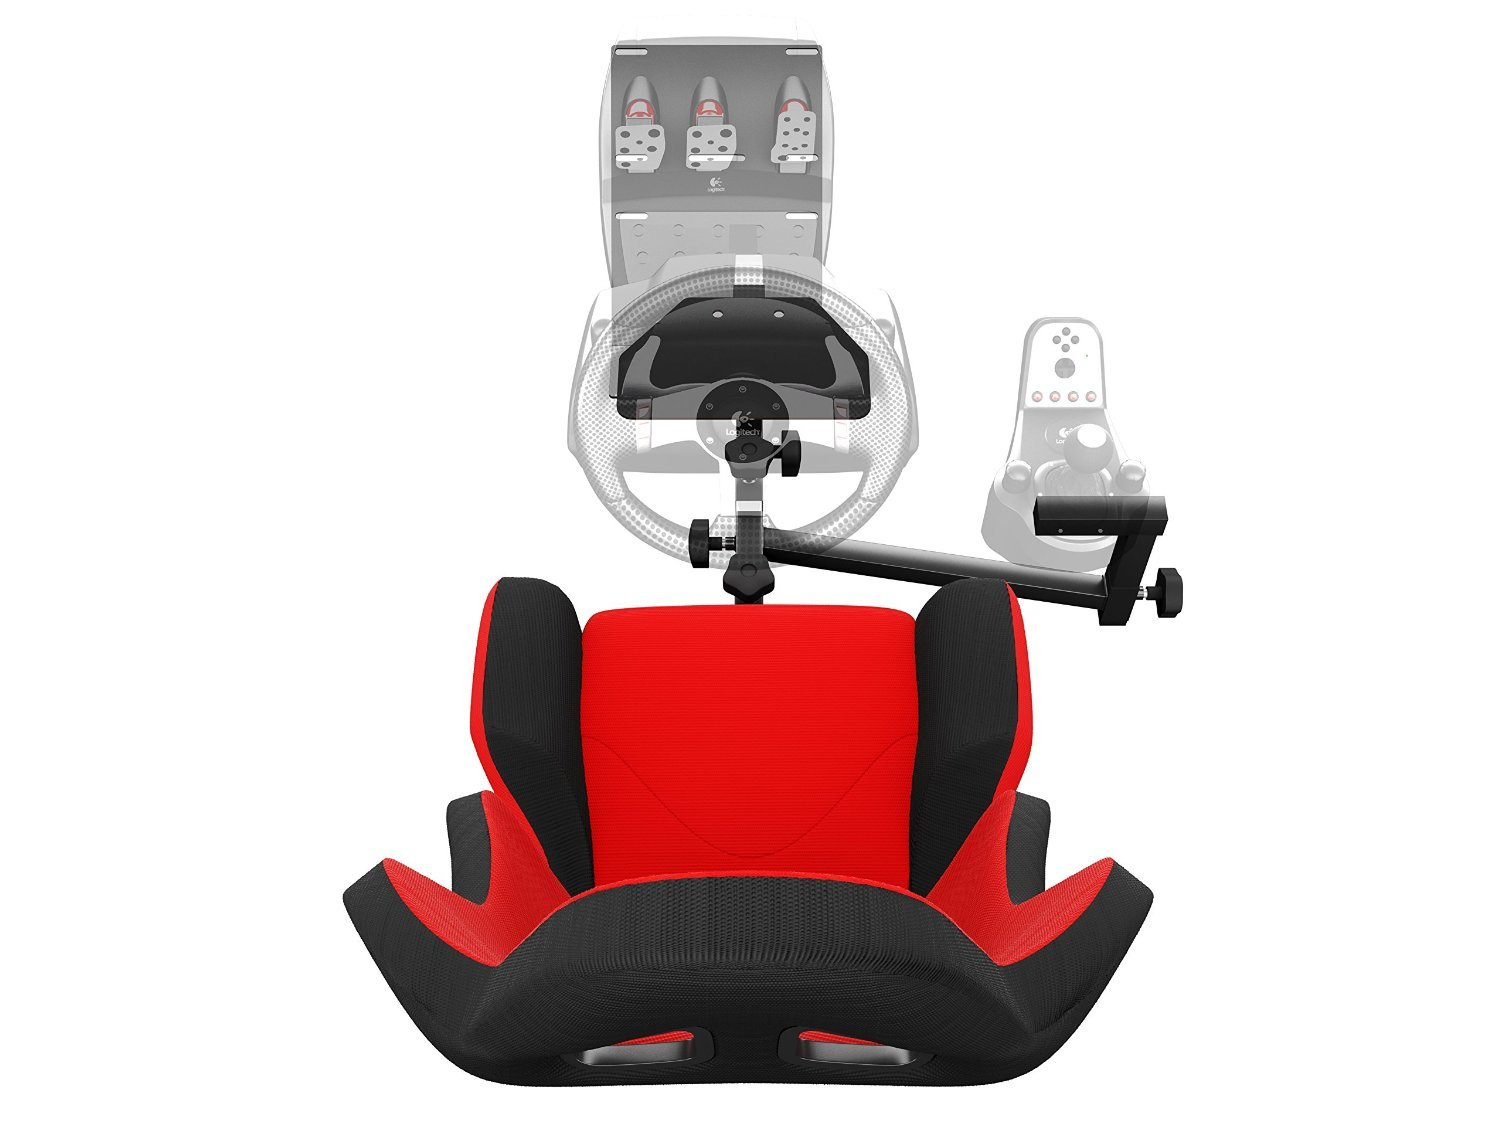 Remarkable Openwheeler Racing Simulator Seat Driving Simulator Chair Inzonedesignstudio Interior Chair Design Inzonedesignstudiocom